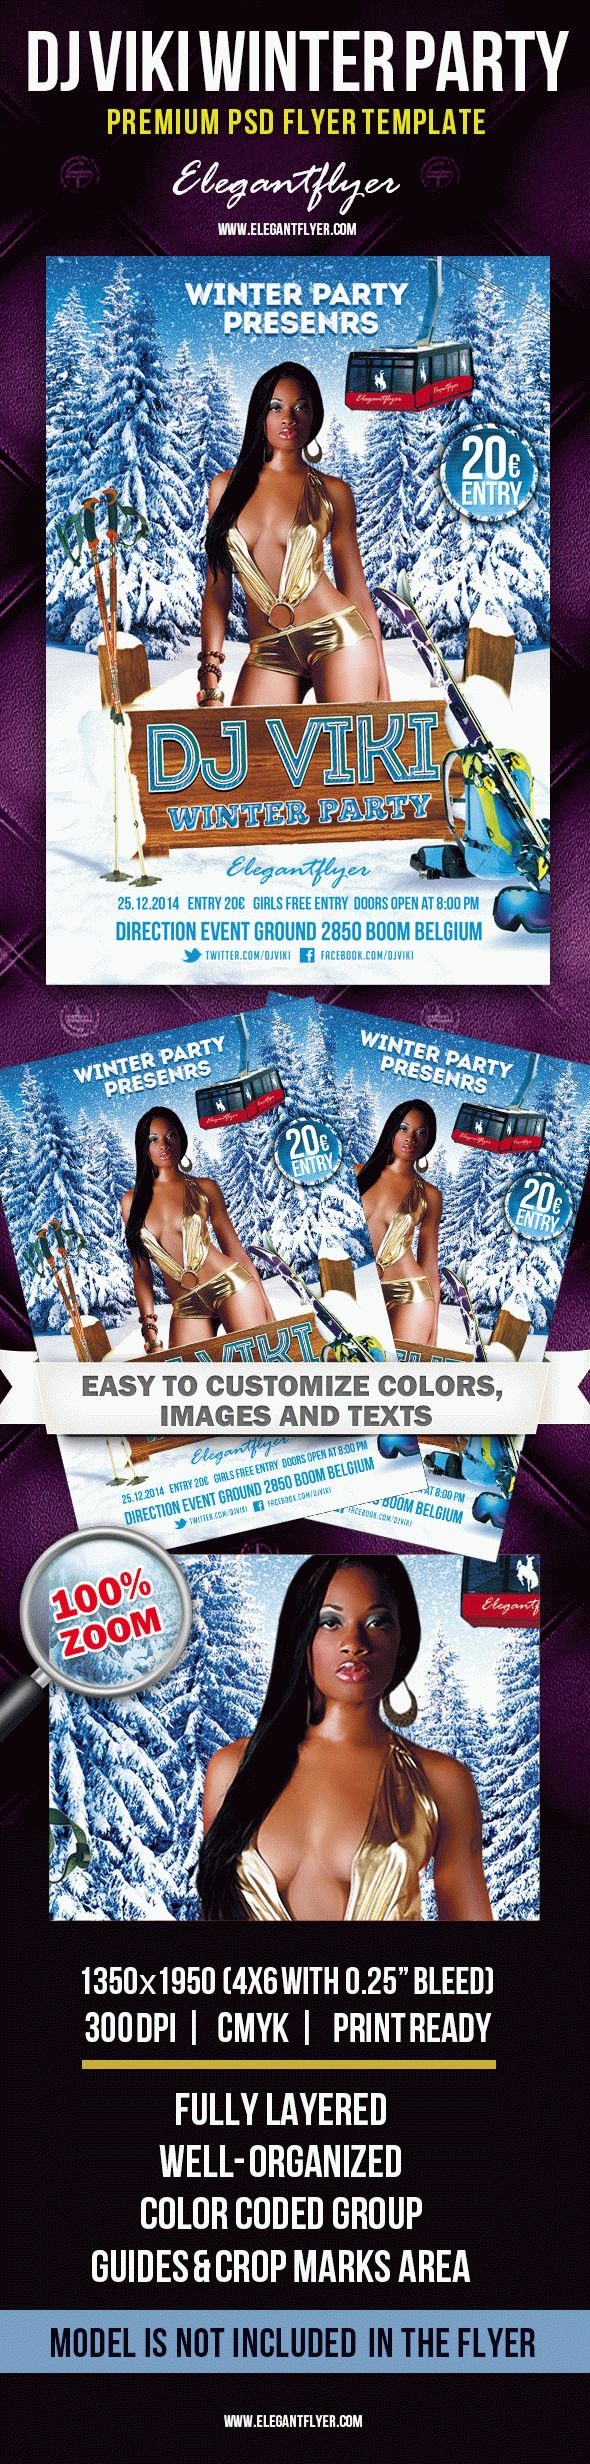 Dj Viki Winter Party Poster Template